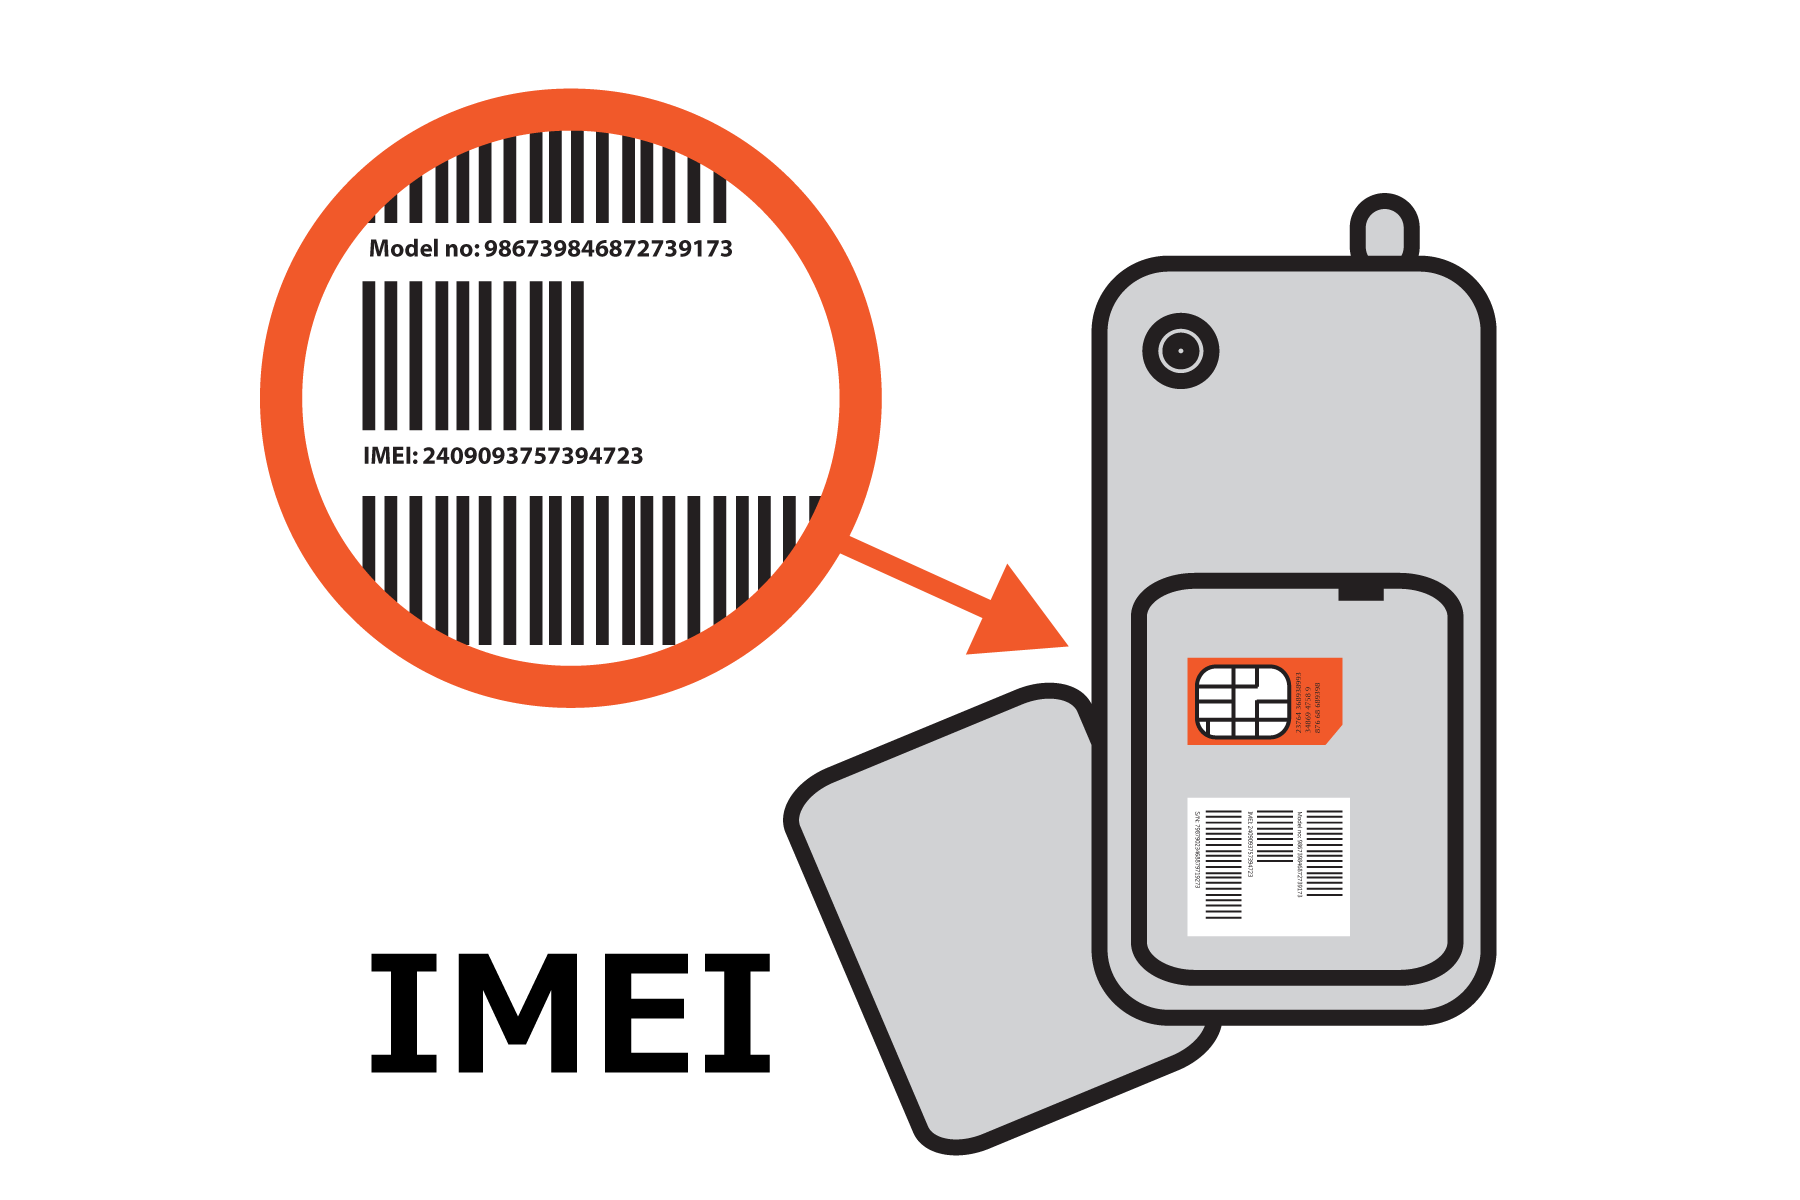 What is The Purpose of an IMEI Number?